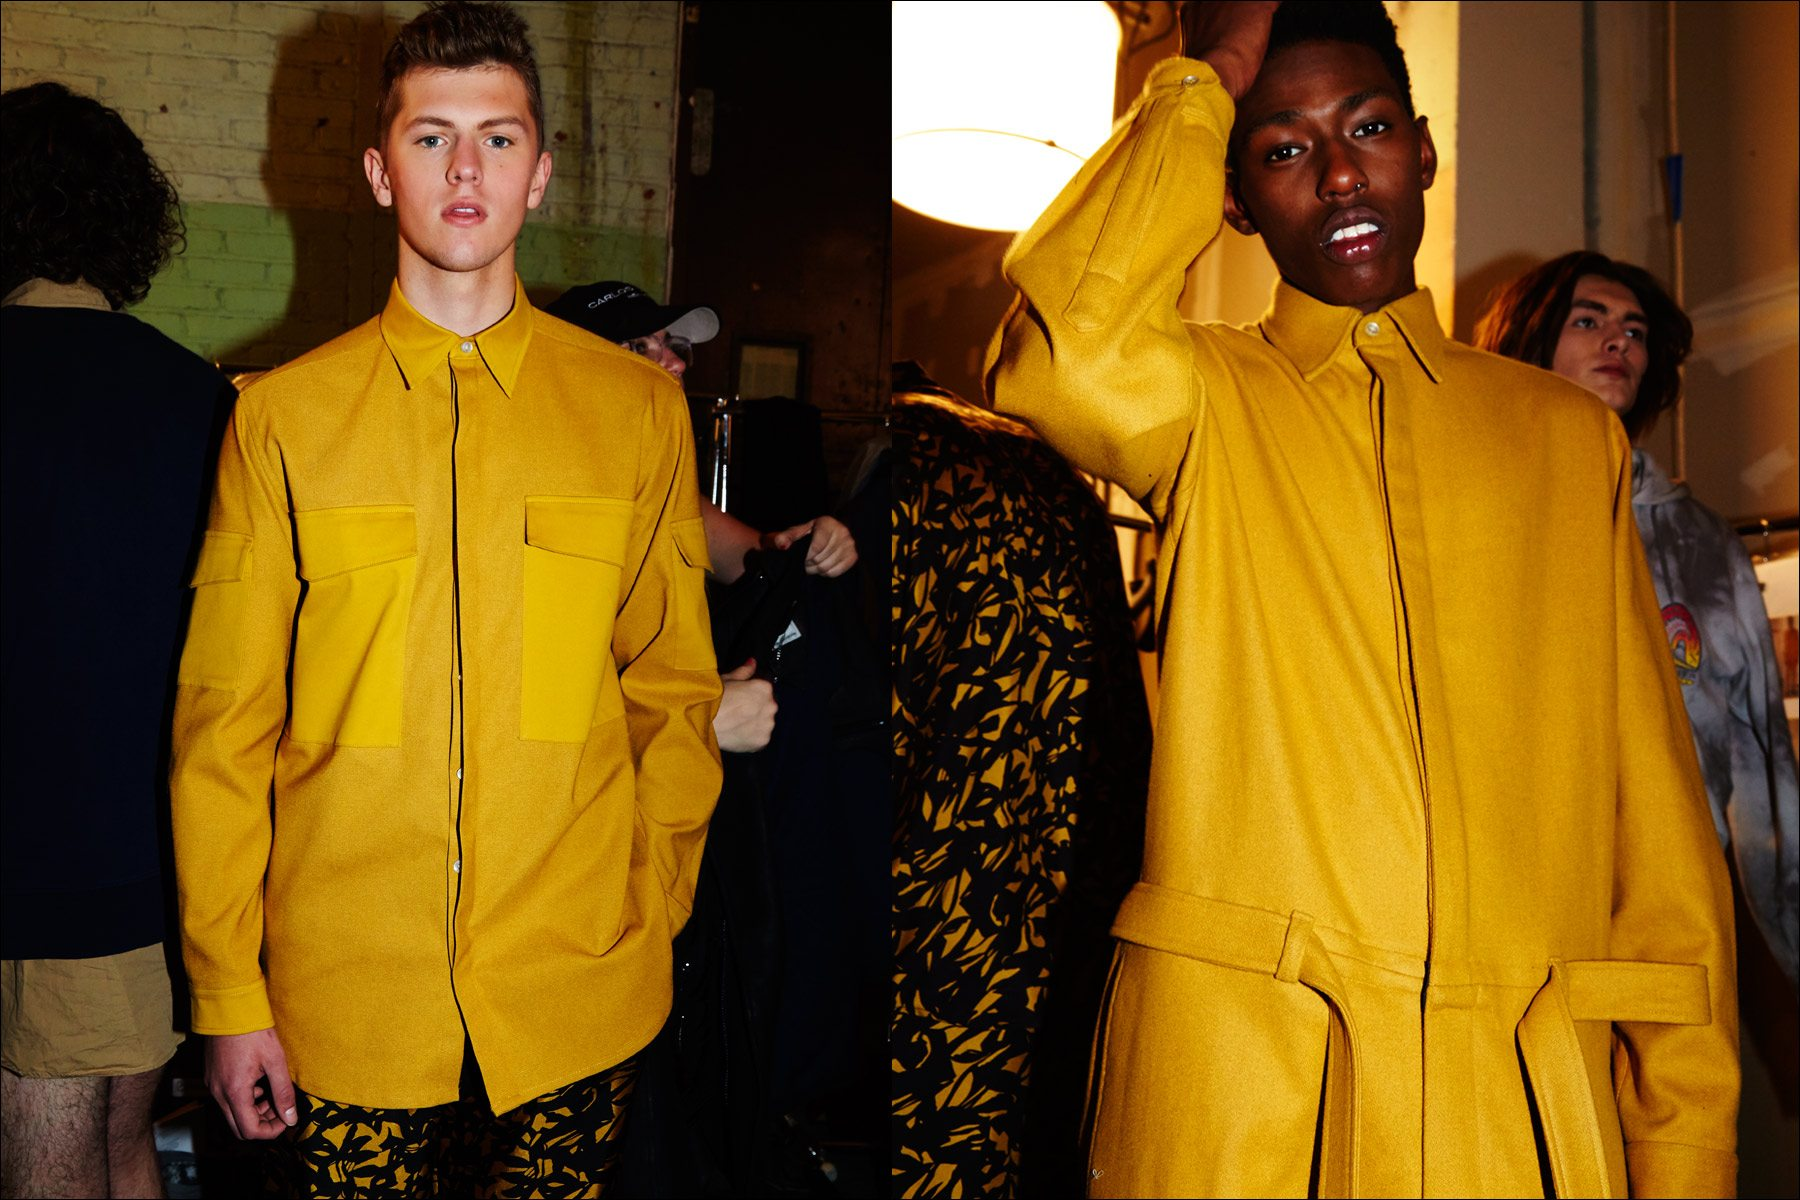 Model Brandon Pikulinski in a mustard look from menswear designer Carlos Campos F/W17. Photography by Alexander Thompson for Ponyboy magazine NY.